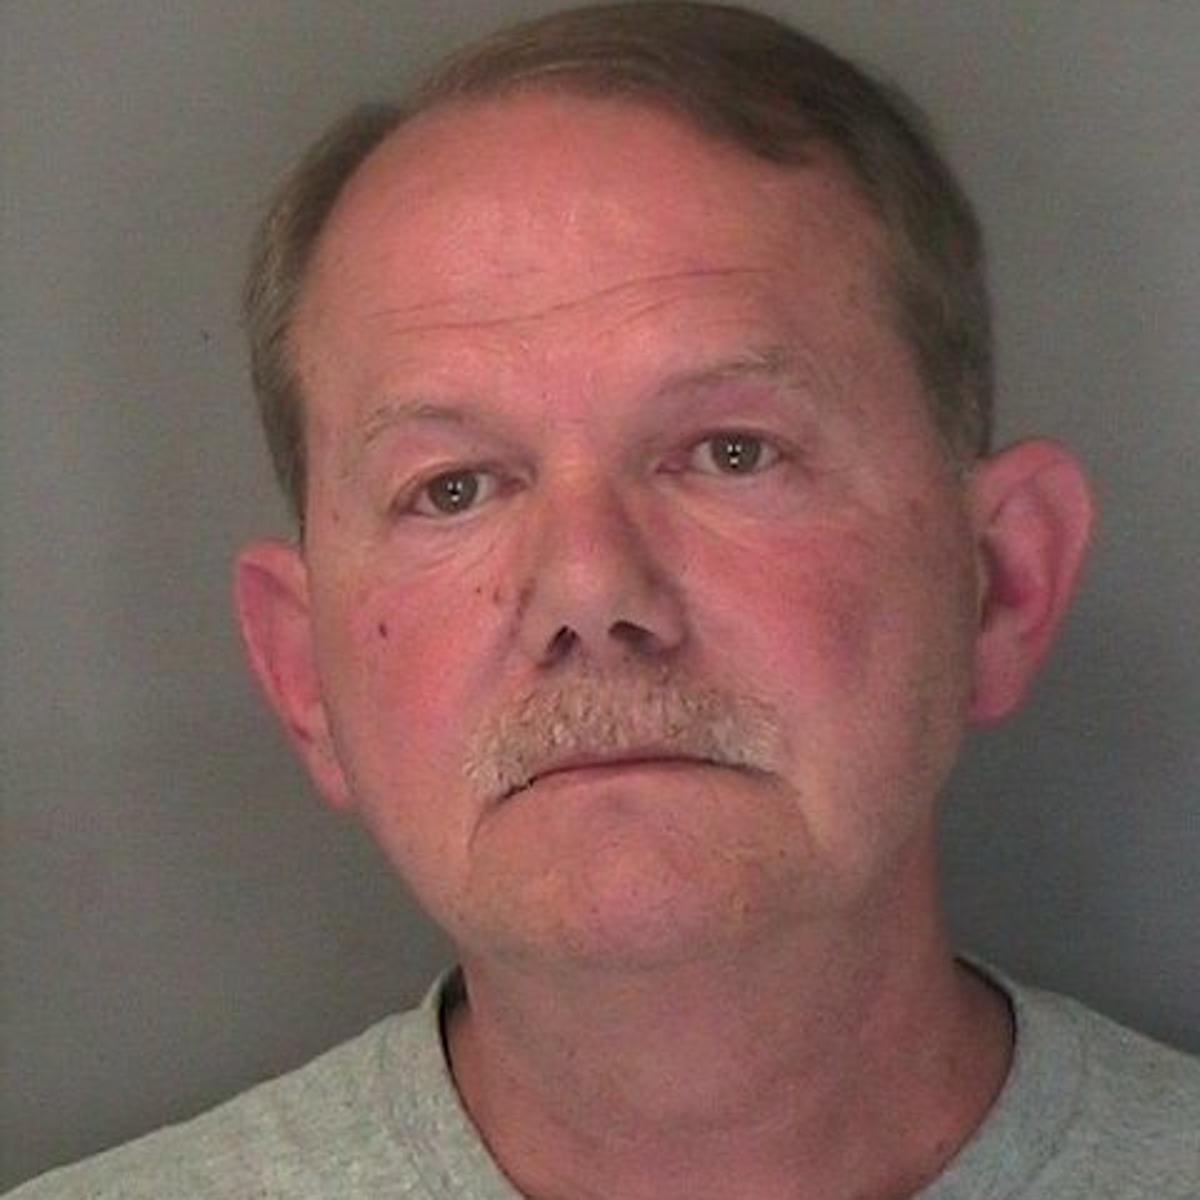 Former public official jailed in sex abuse case | Local